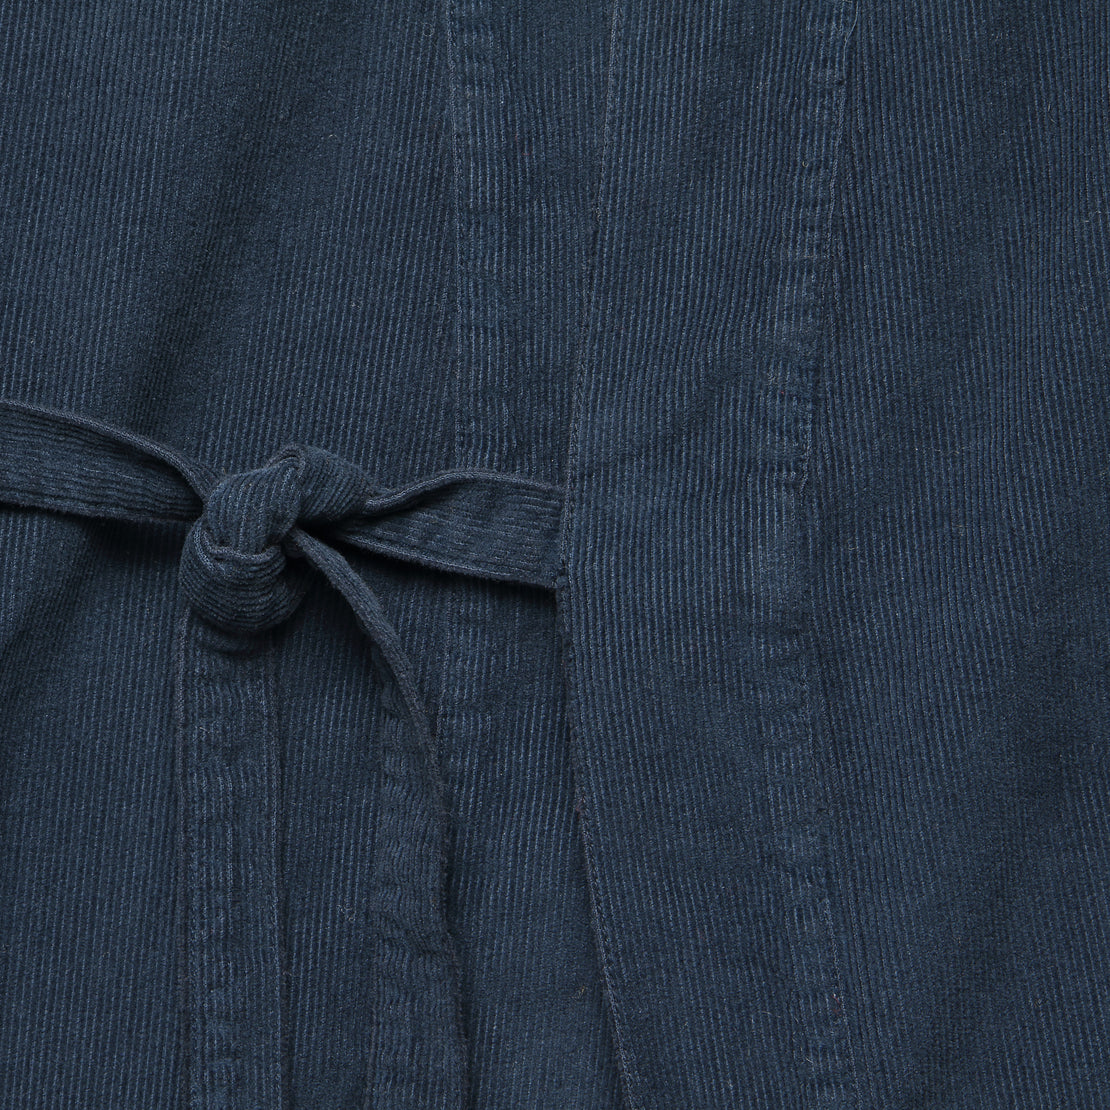 Kyoto Work Jacket - Navy Cord